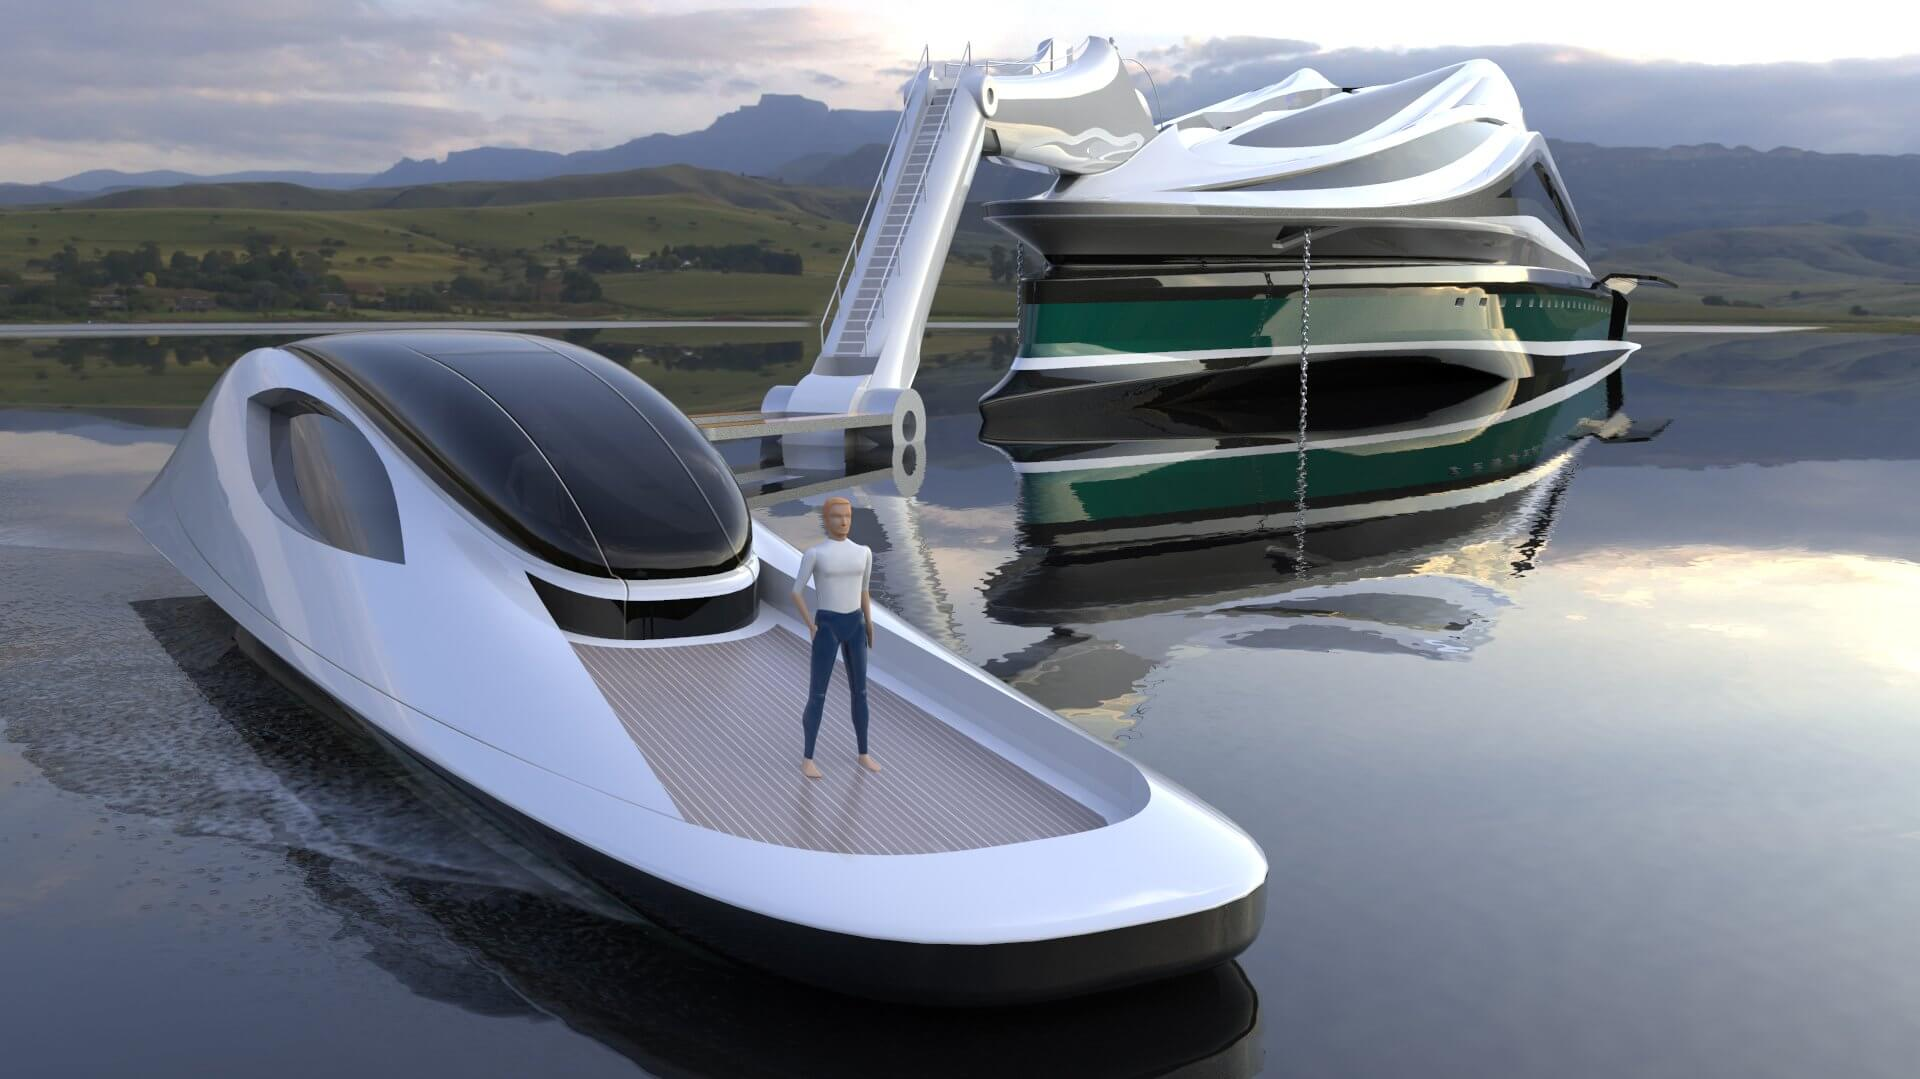 Superyacht Concept Avanguardia The Swan by Lazzarini Studio Design Tender Detached